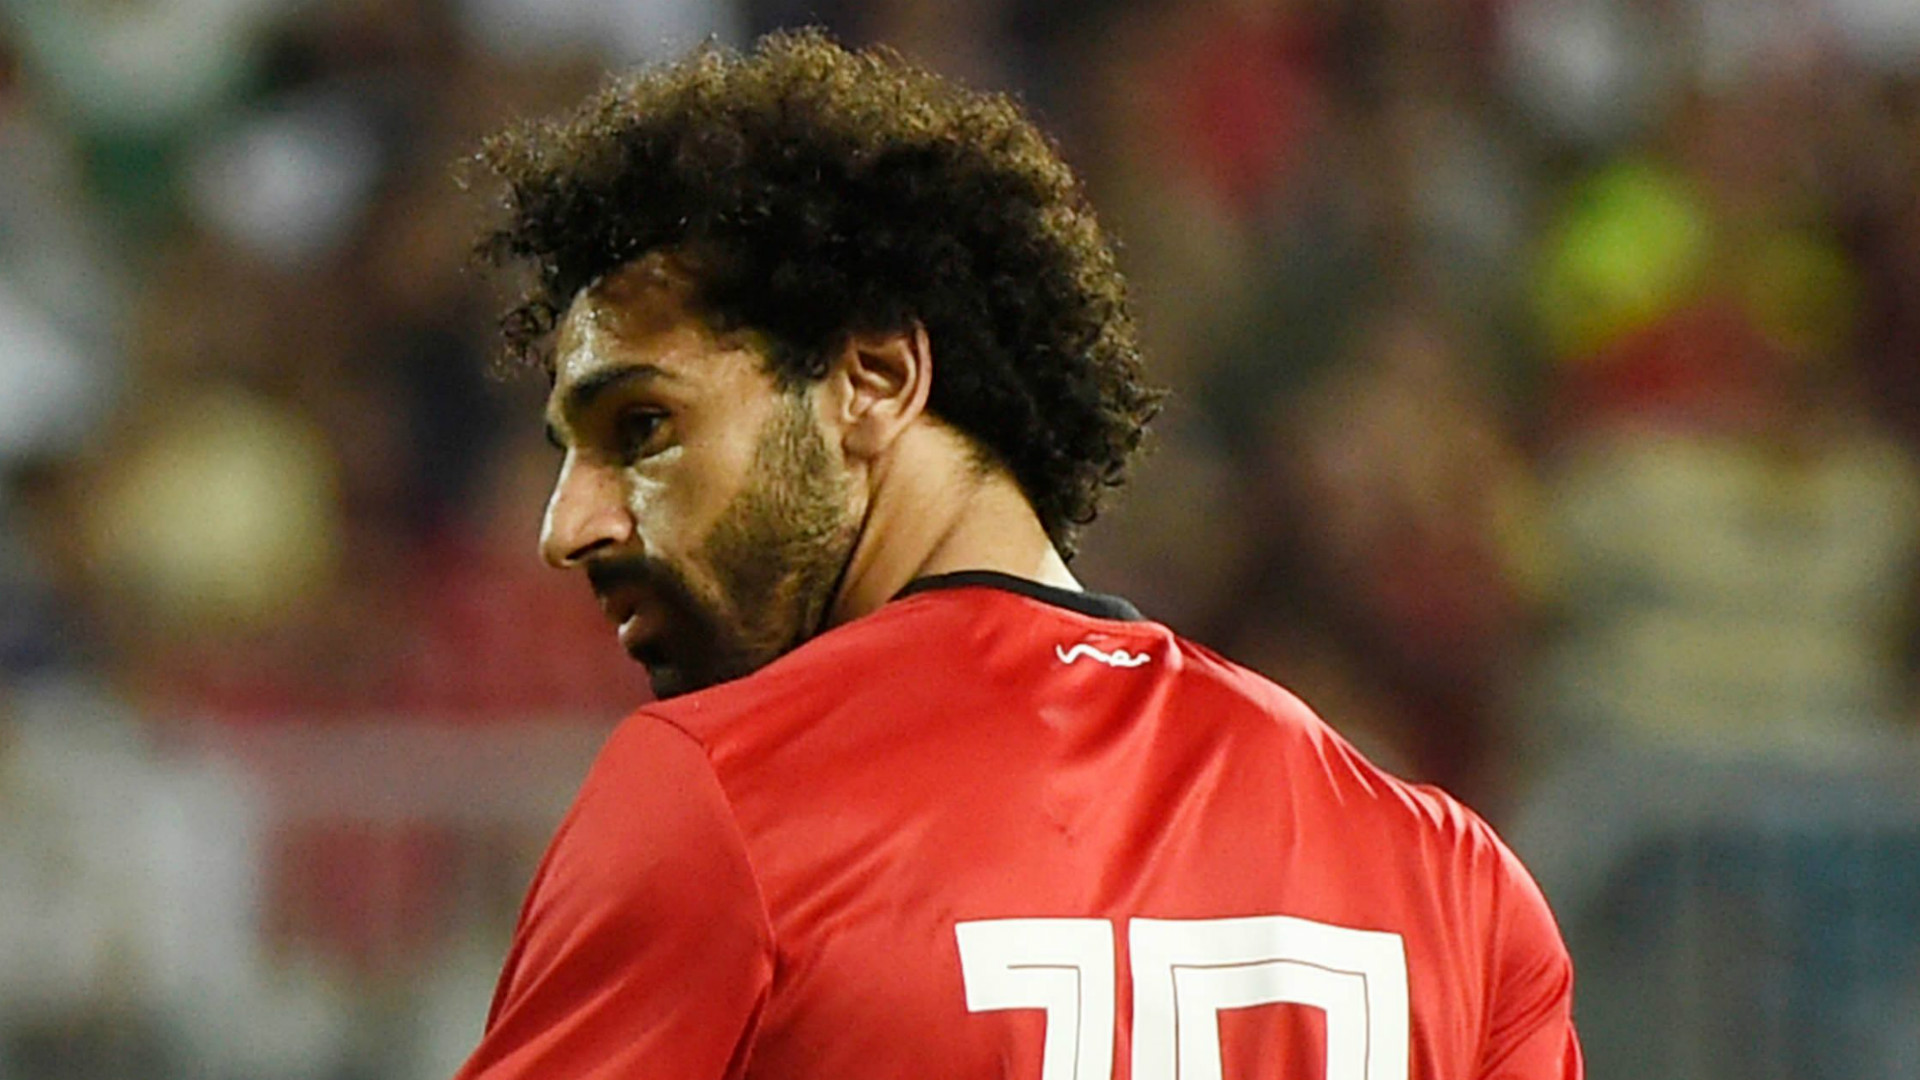 Mohamed Salah Injury Salah Returns To Liverpool For Treatment After Limping Out Of Egypt Clash Goal Com